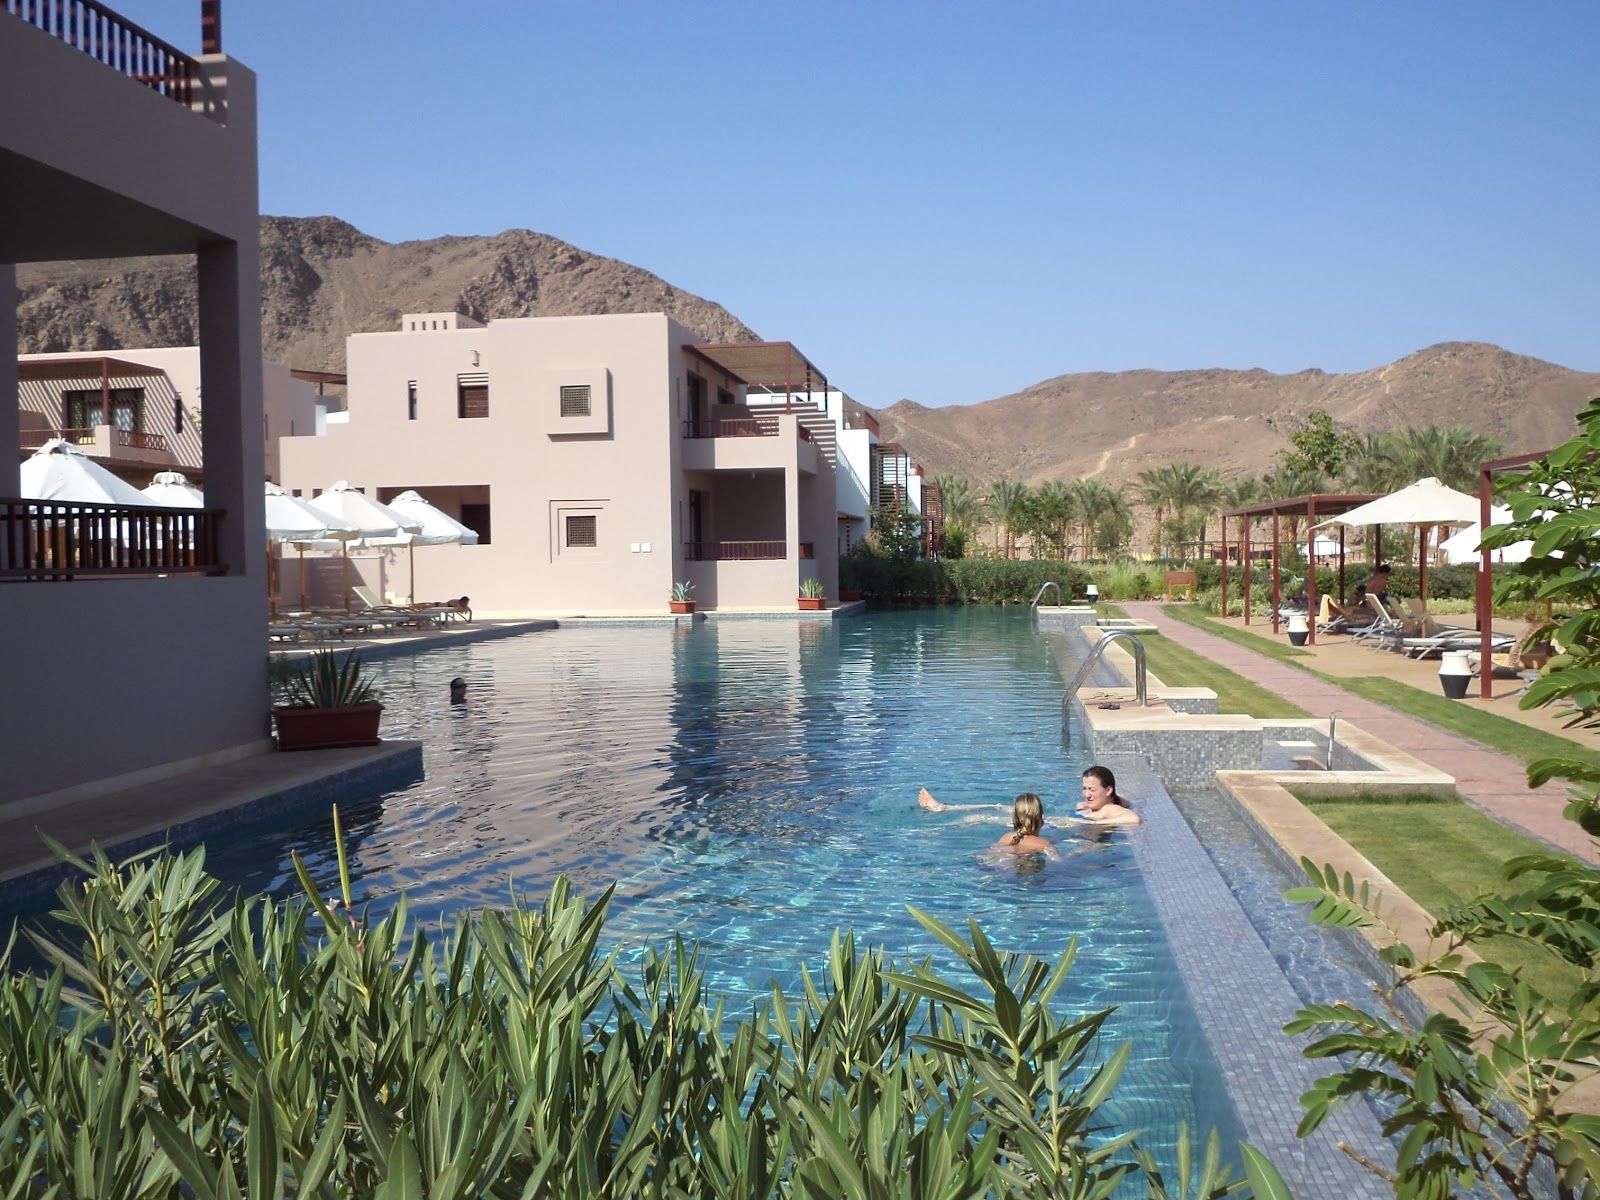 Zout Water Zwembad Zoutwaterzwembad Club Med Sinai Bay Taba Egypte Egypt